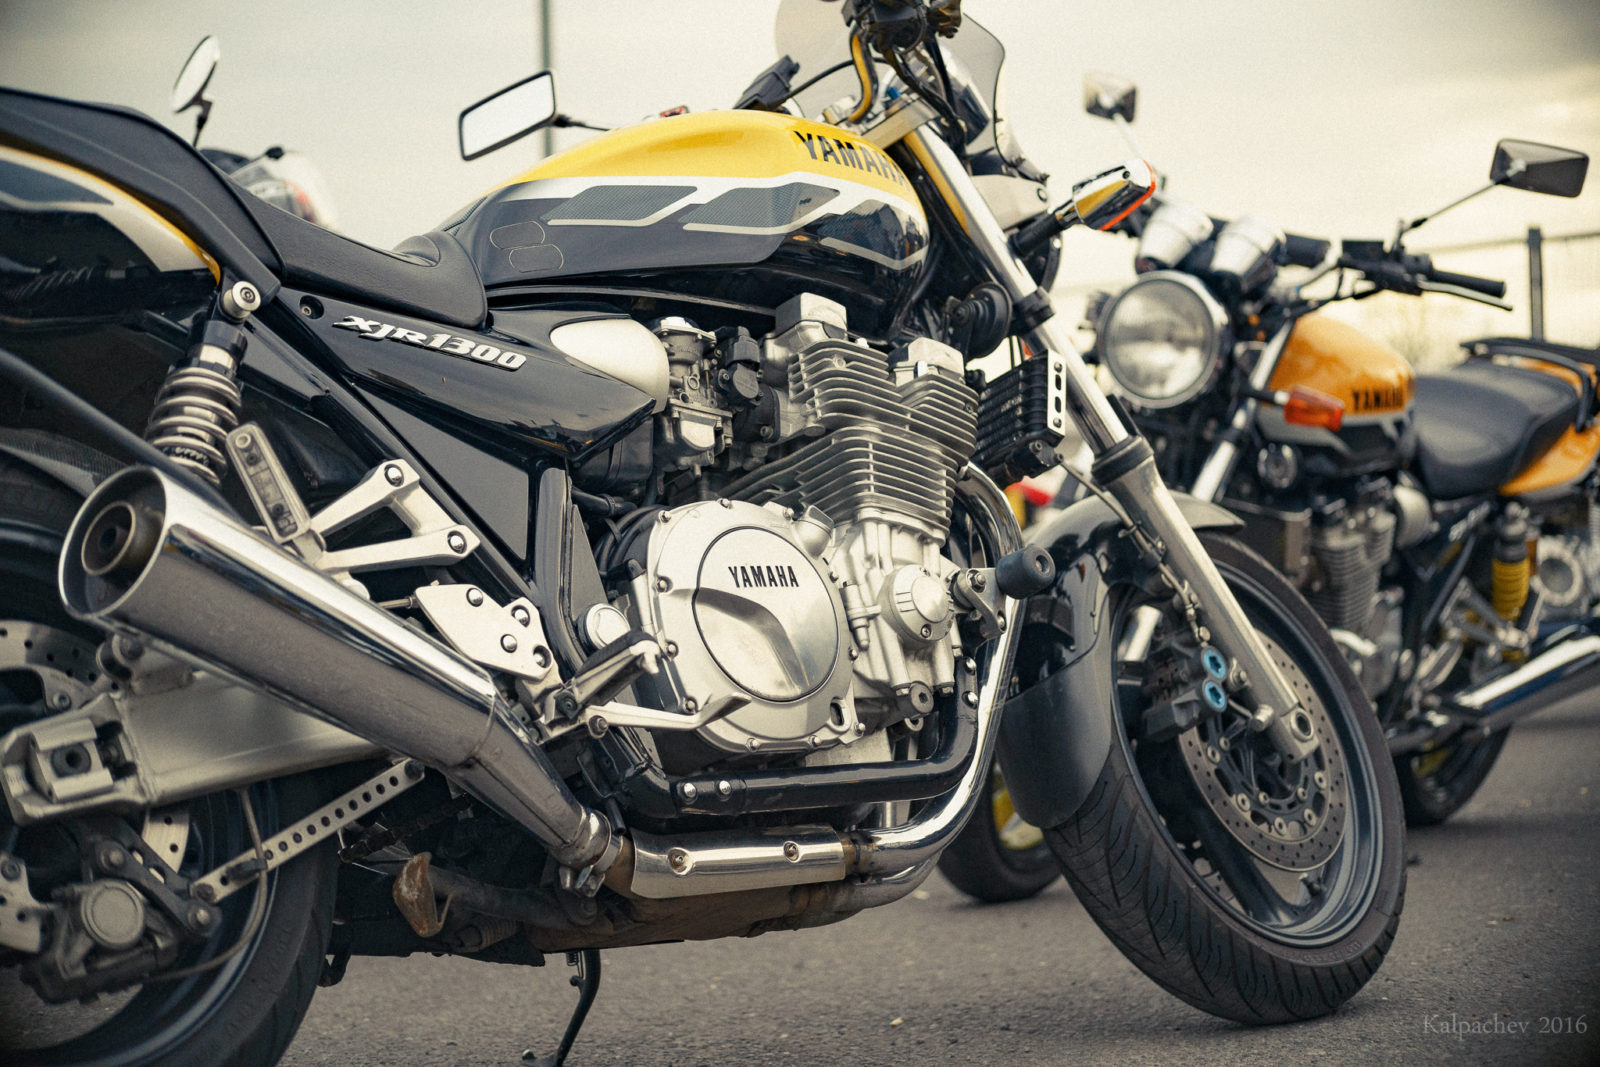 Yamaha xjr 1300 at Ace Cafe London